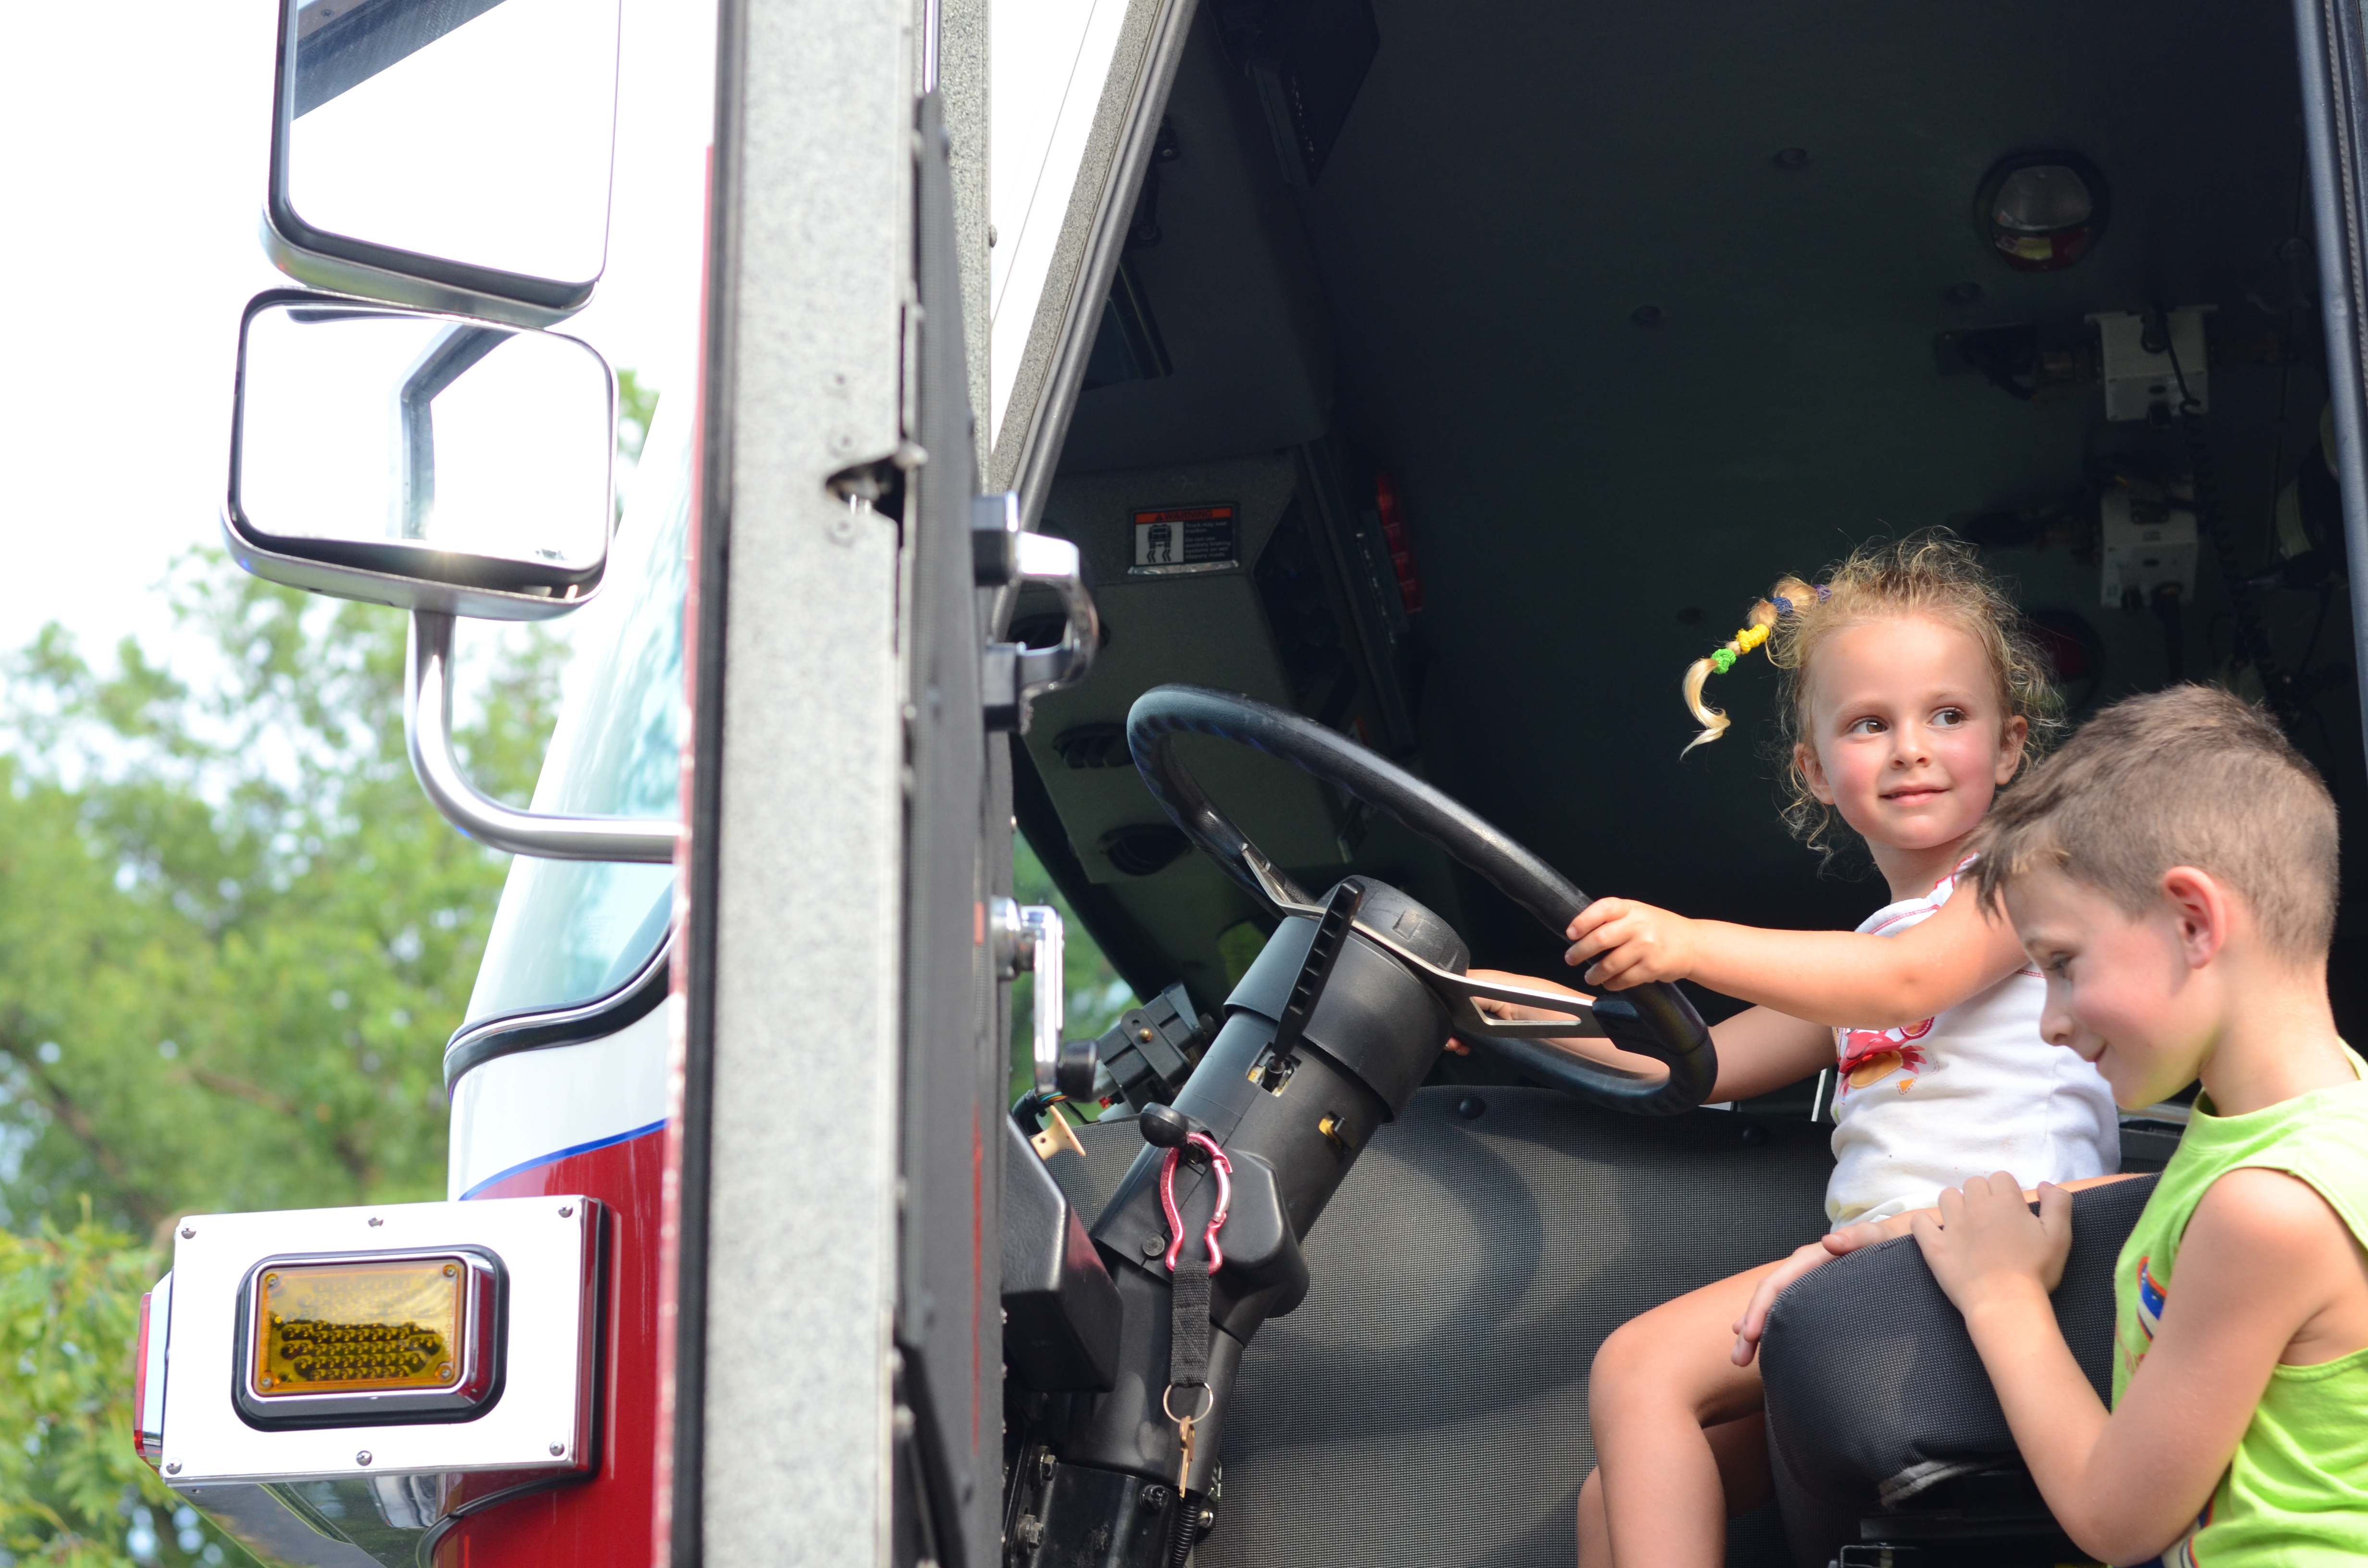 children explore fire truck